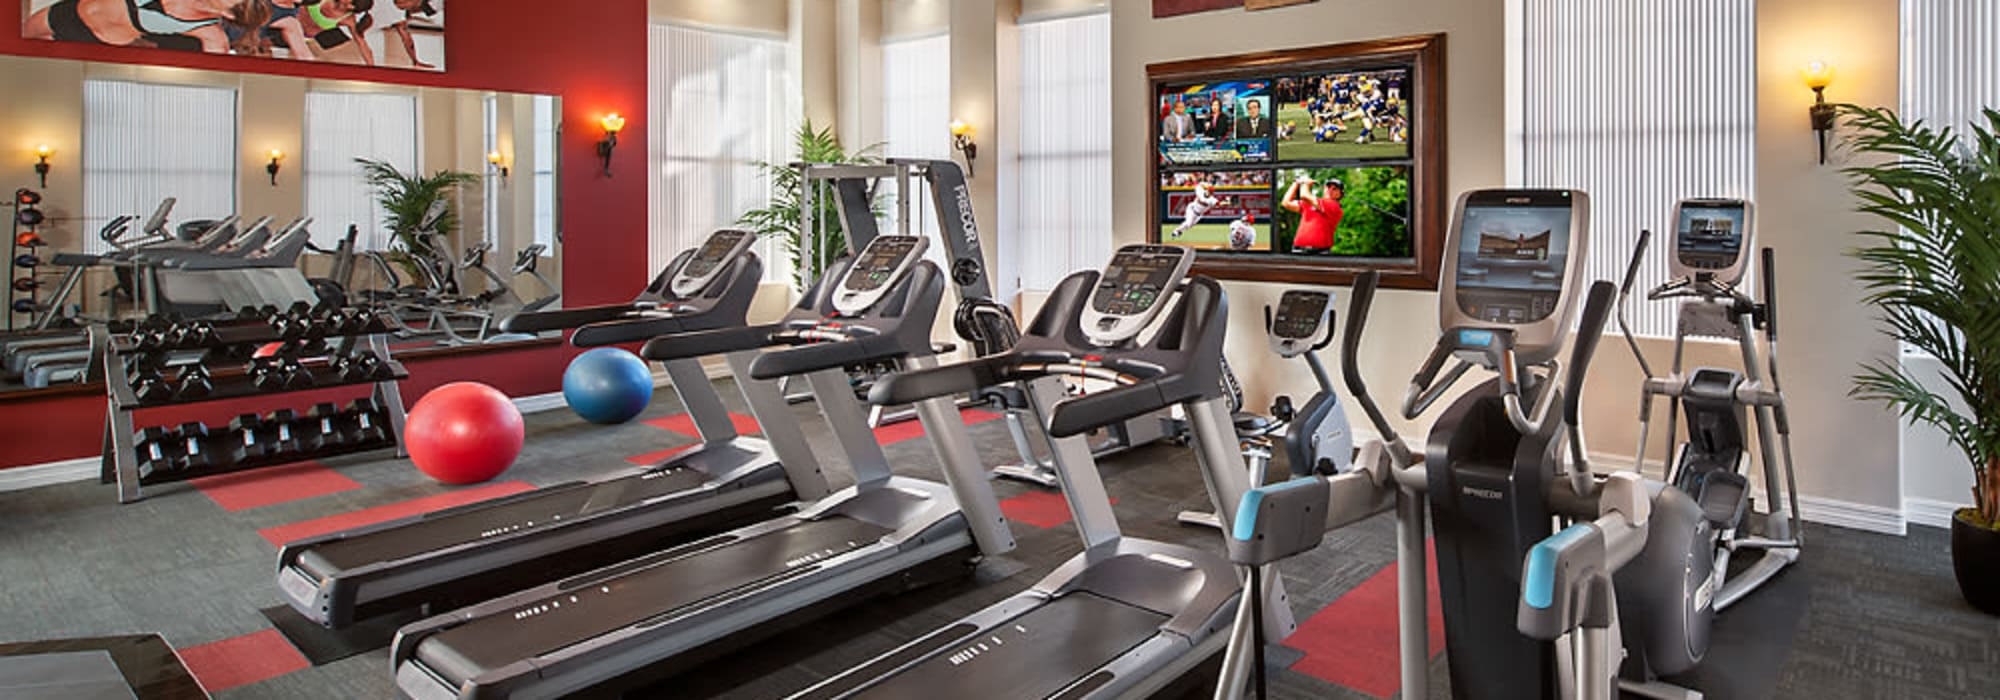 Fitness center at San Norterra in Phoenix, Arizona